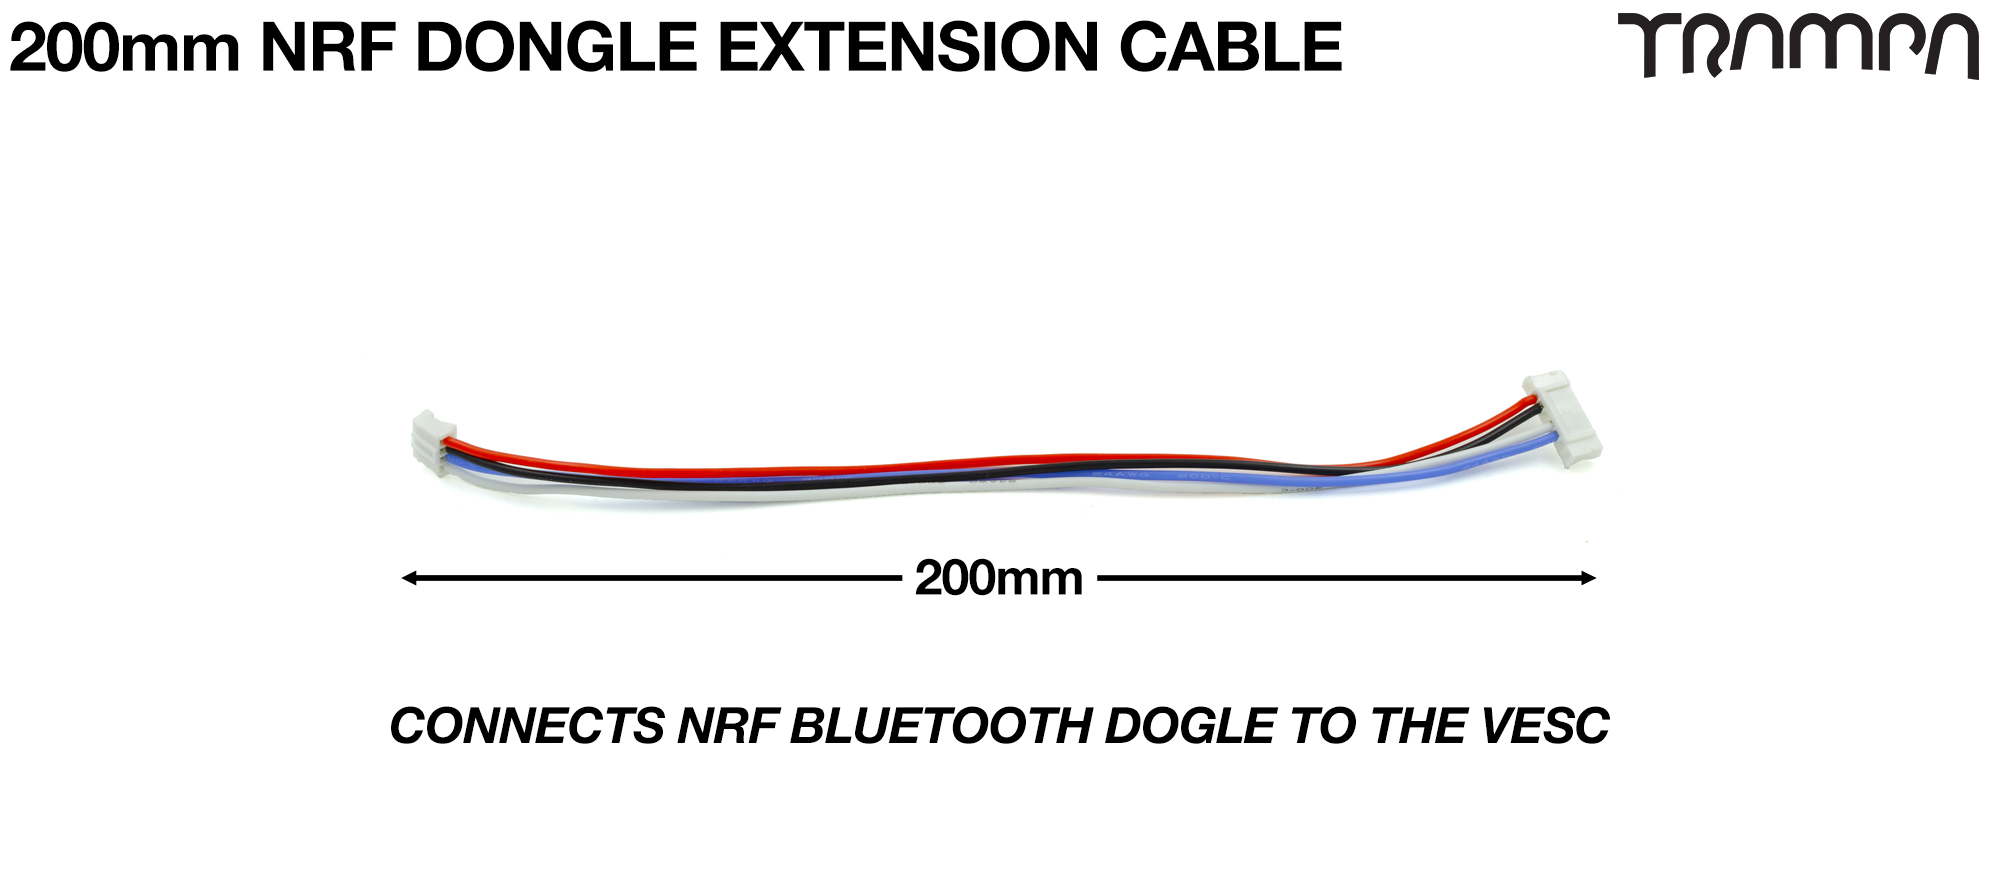 NRF Dongle Extender cable 200mm - VESC 6